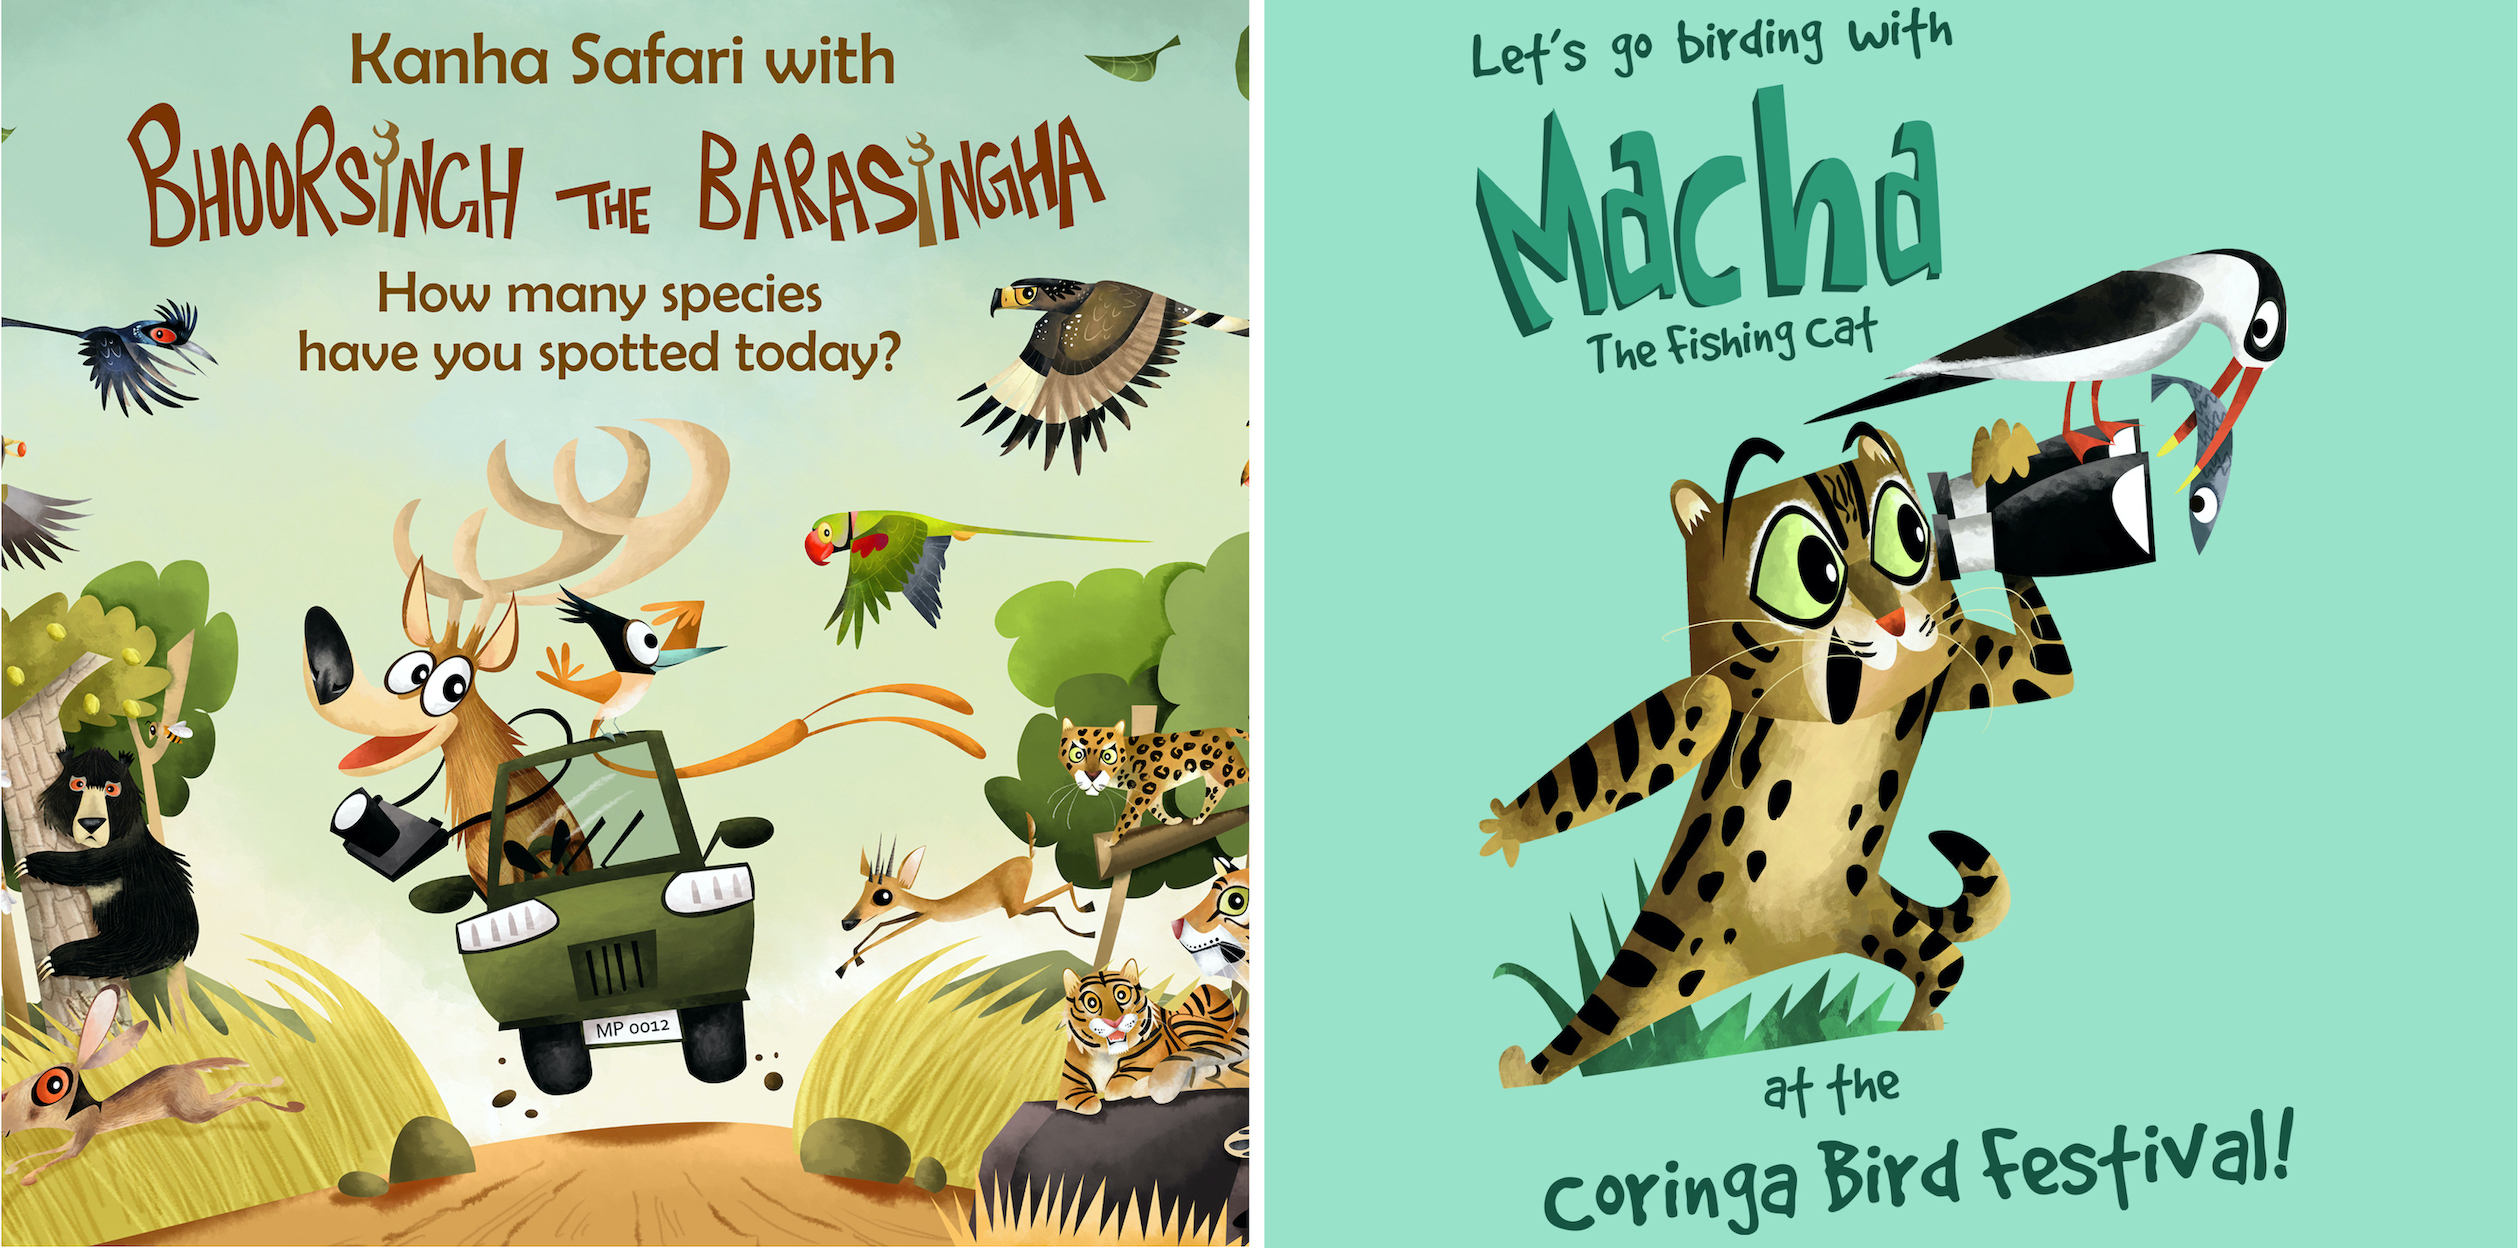 Chakravarty has collaborated with state forest departments to create eye-catching mascots for various sanctuaries and reserves. Seen here are Bhoorsingh the barasingha for Kanha National Park (left) and Macha the fishing cat for the Coringa Wildlife Sanctuary (right). Photo: Madhya Pradesh Forest Department (left) Andhra Pradesh Forest Department (right)  Cover photo: Rohan Chakravarty and his dog Srishti. Cover photo: Rohit Chakravarty